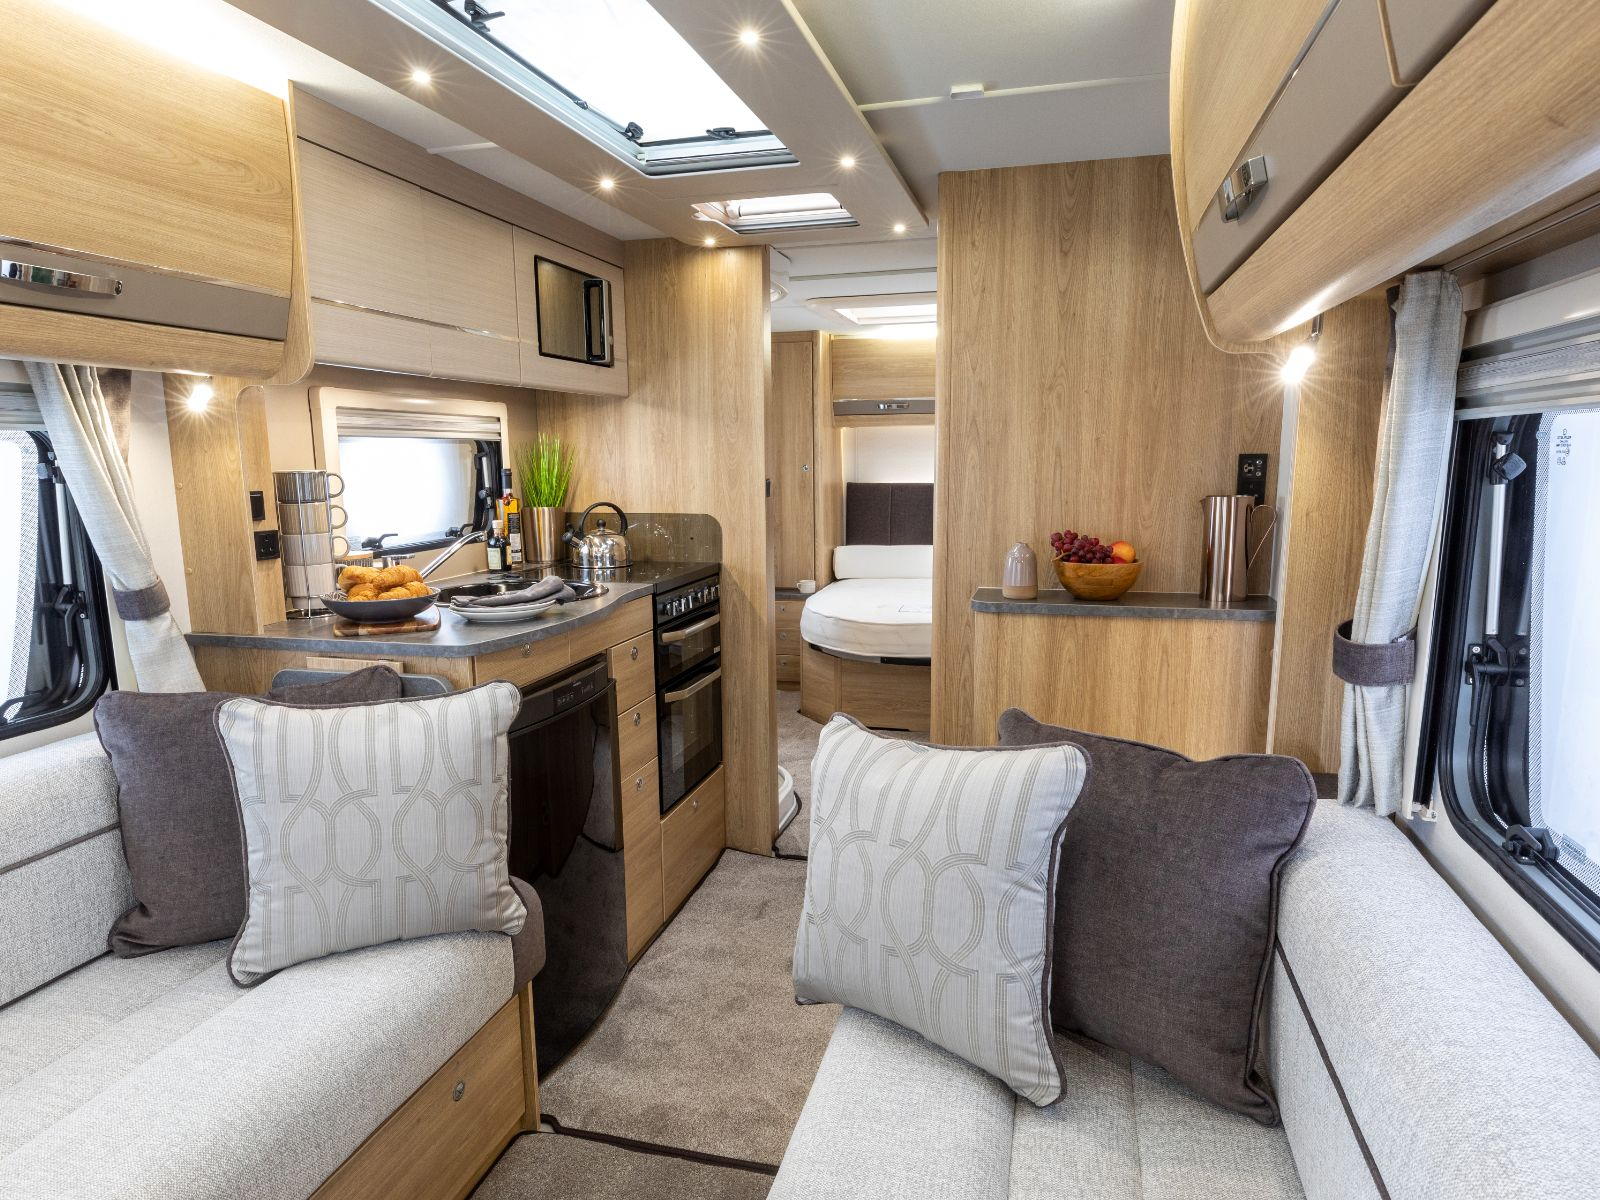 Riva Caravan Lounge Area with Kitchen View'